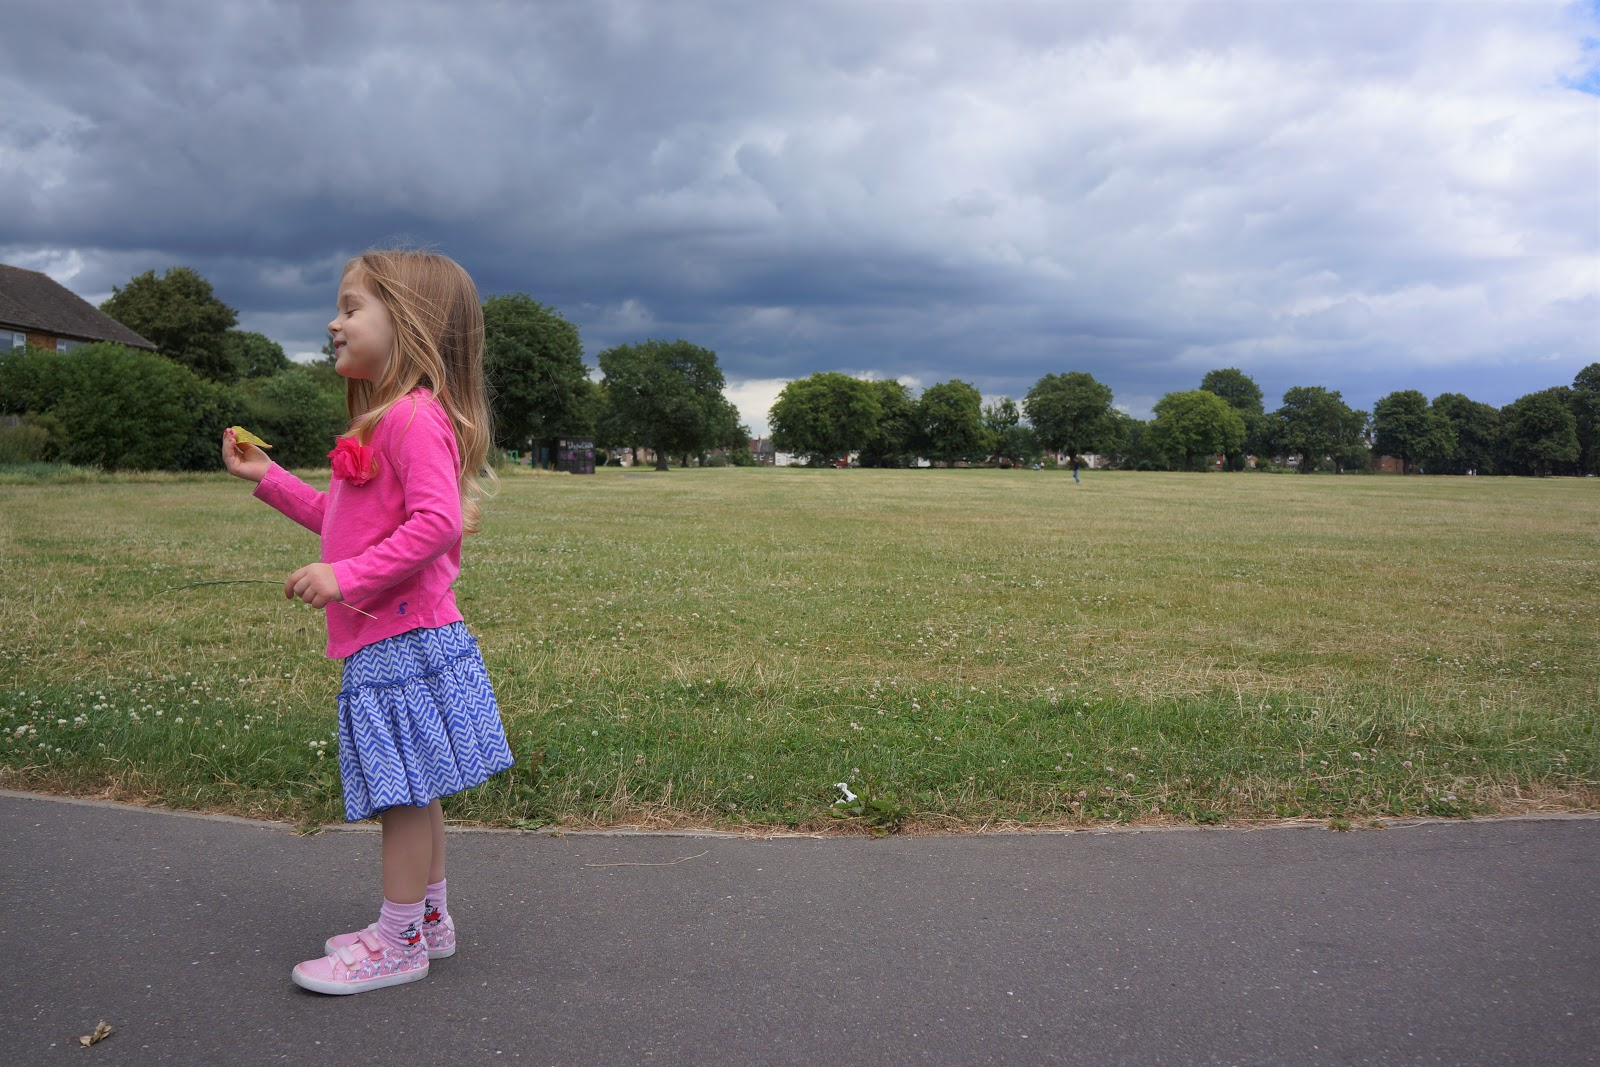 girl in a pink shirt and blue skirt standing in a park